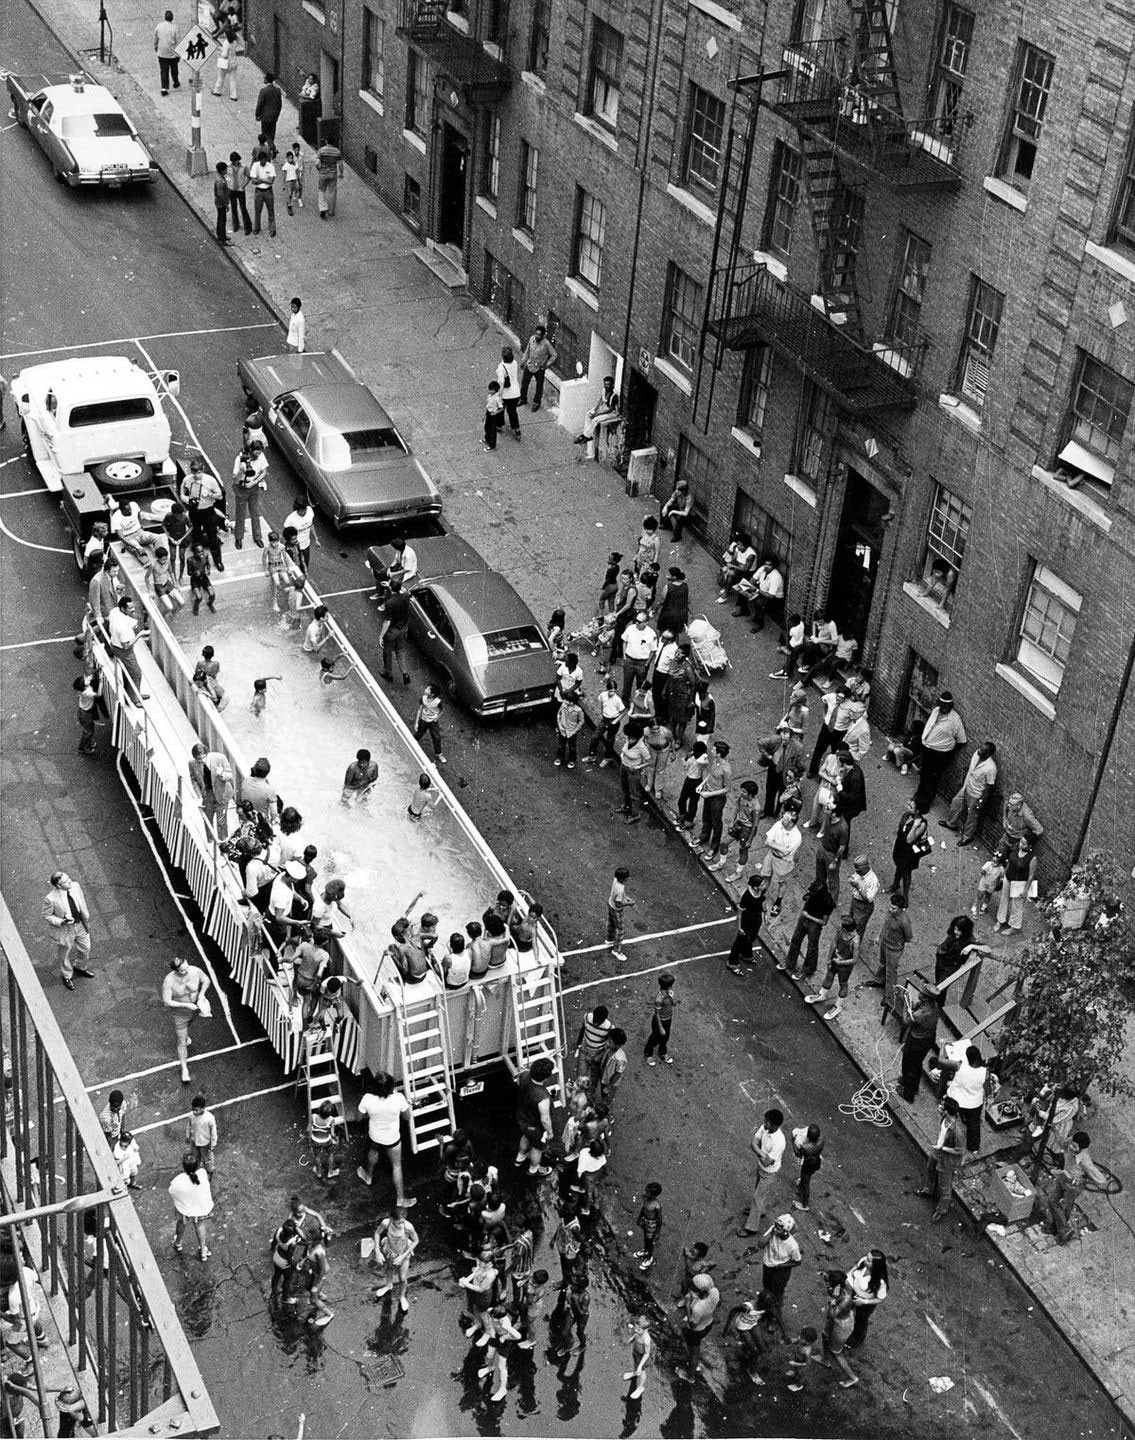 thumb-New-York-City-Swimmobile-.-1960s--New-York-City-.-Swimmobile-.-1960s.jpg